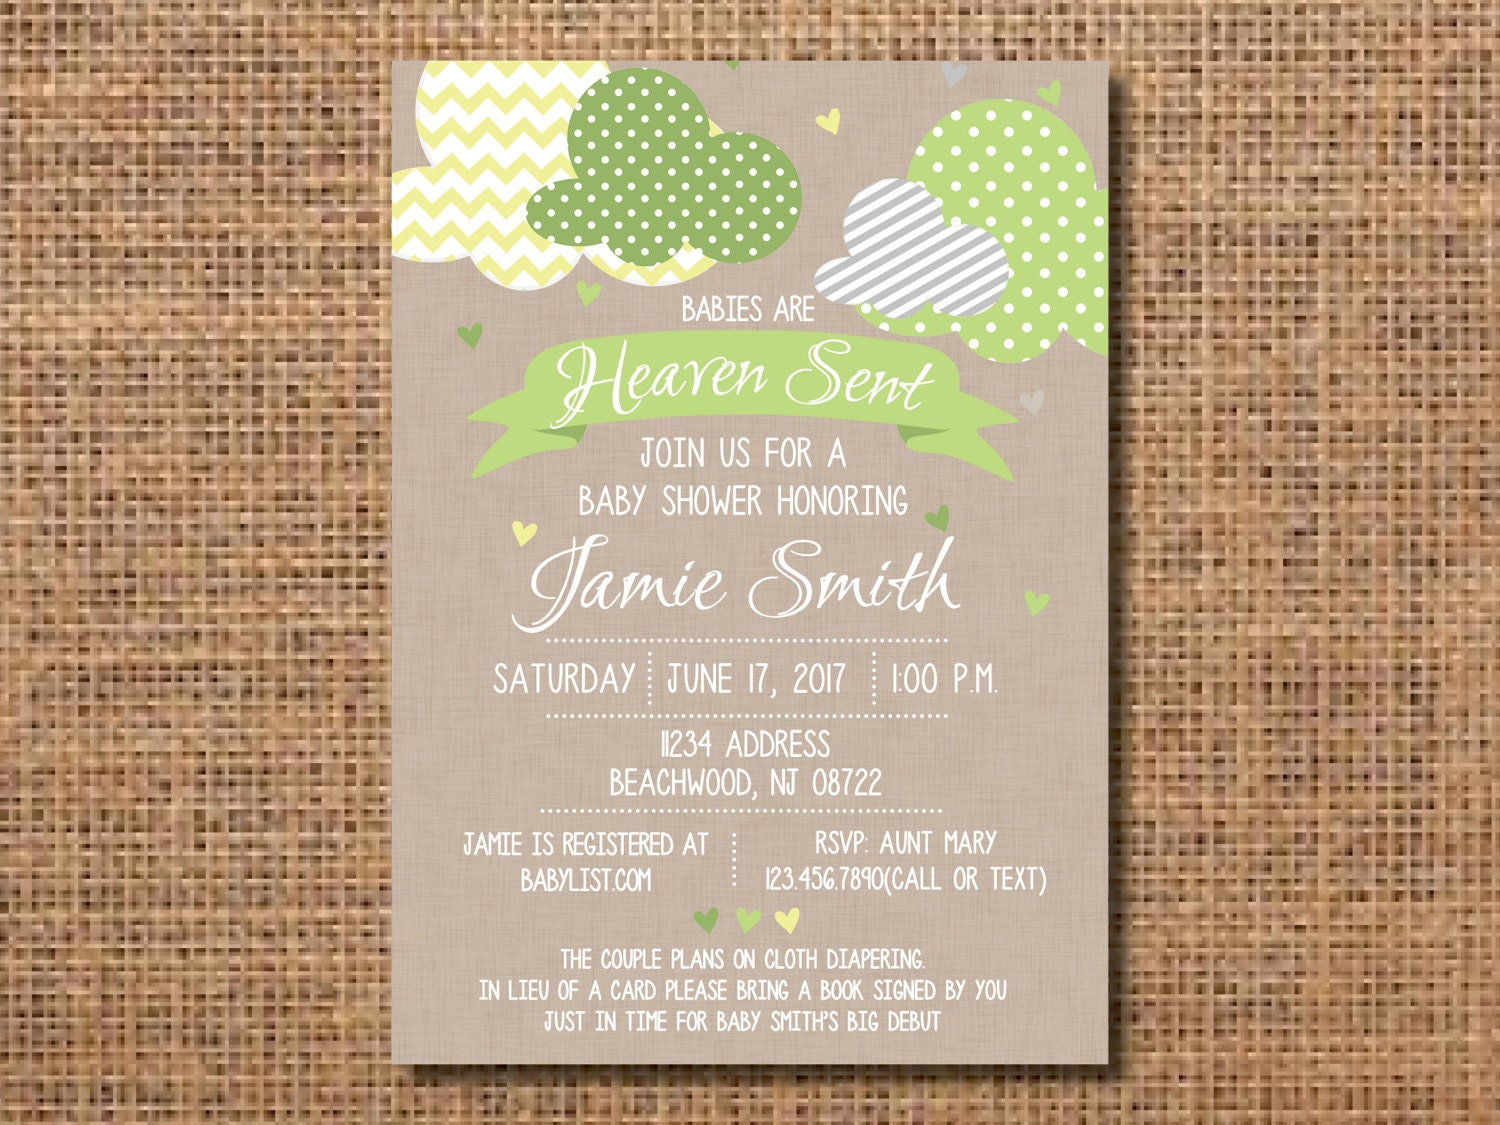 Heaven Sent Baby Shower Invitation, Gender Neutral Baby Shower ...